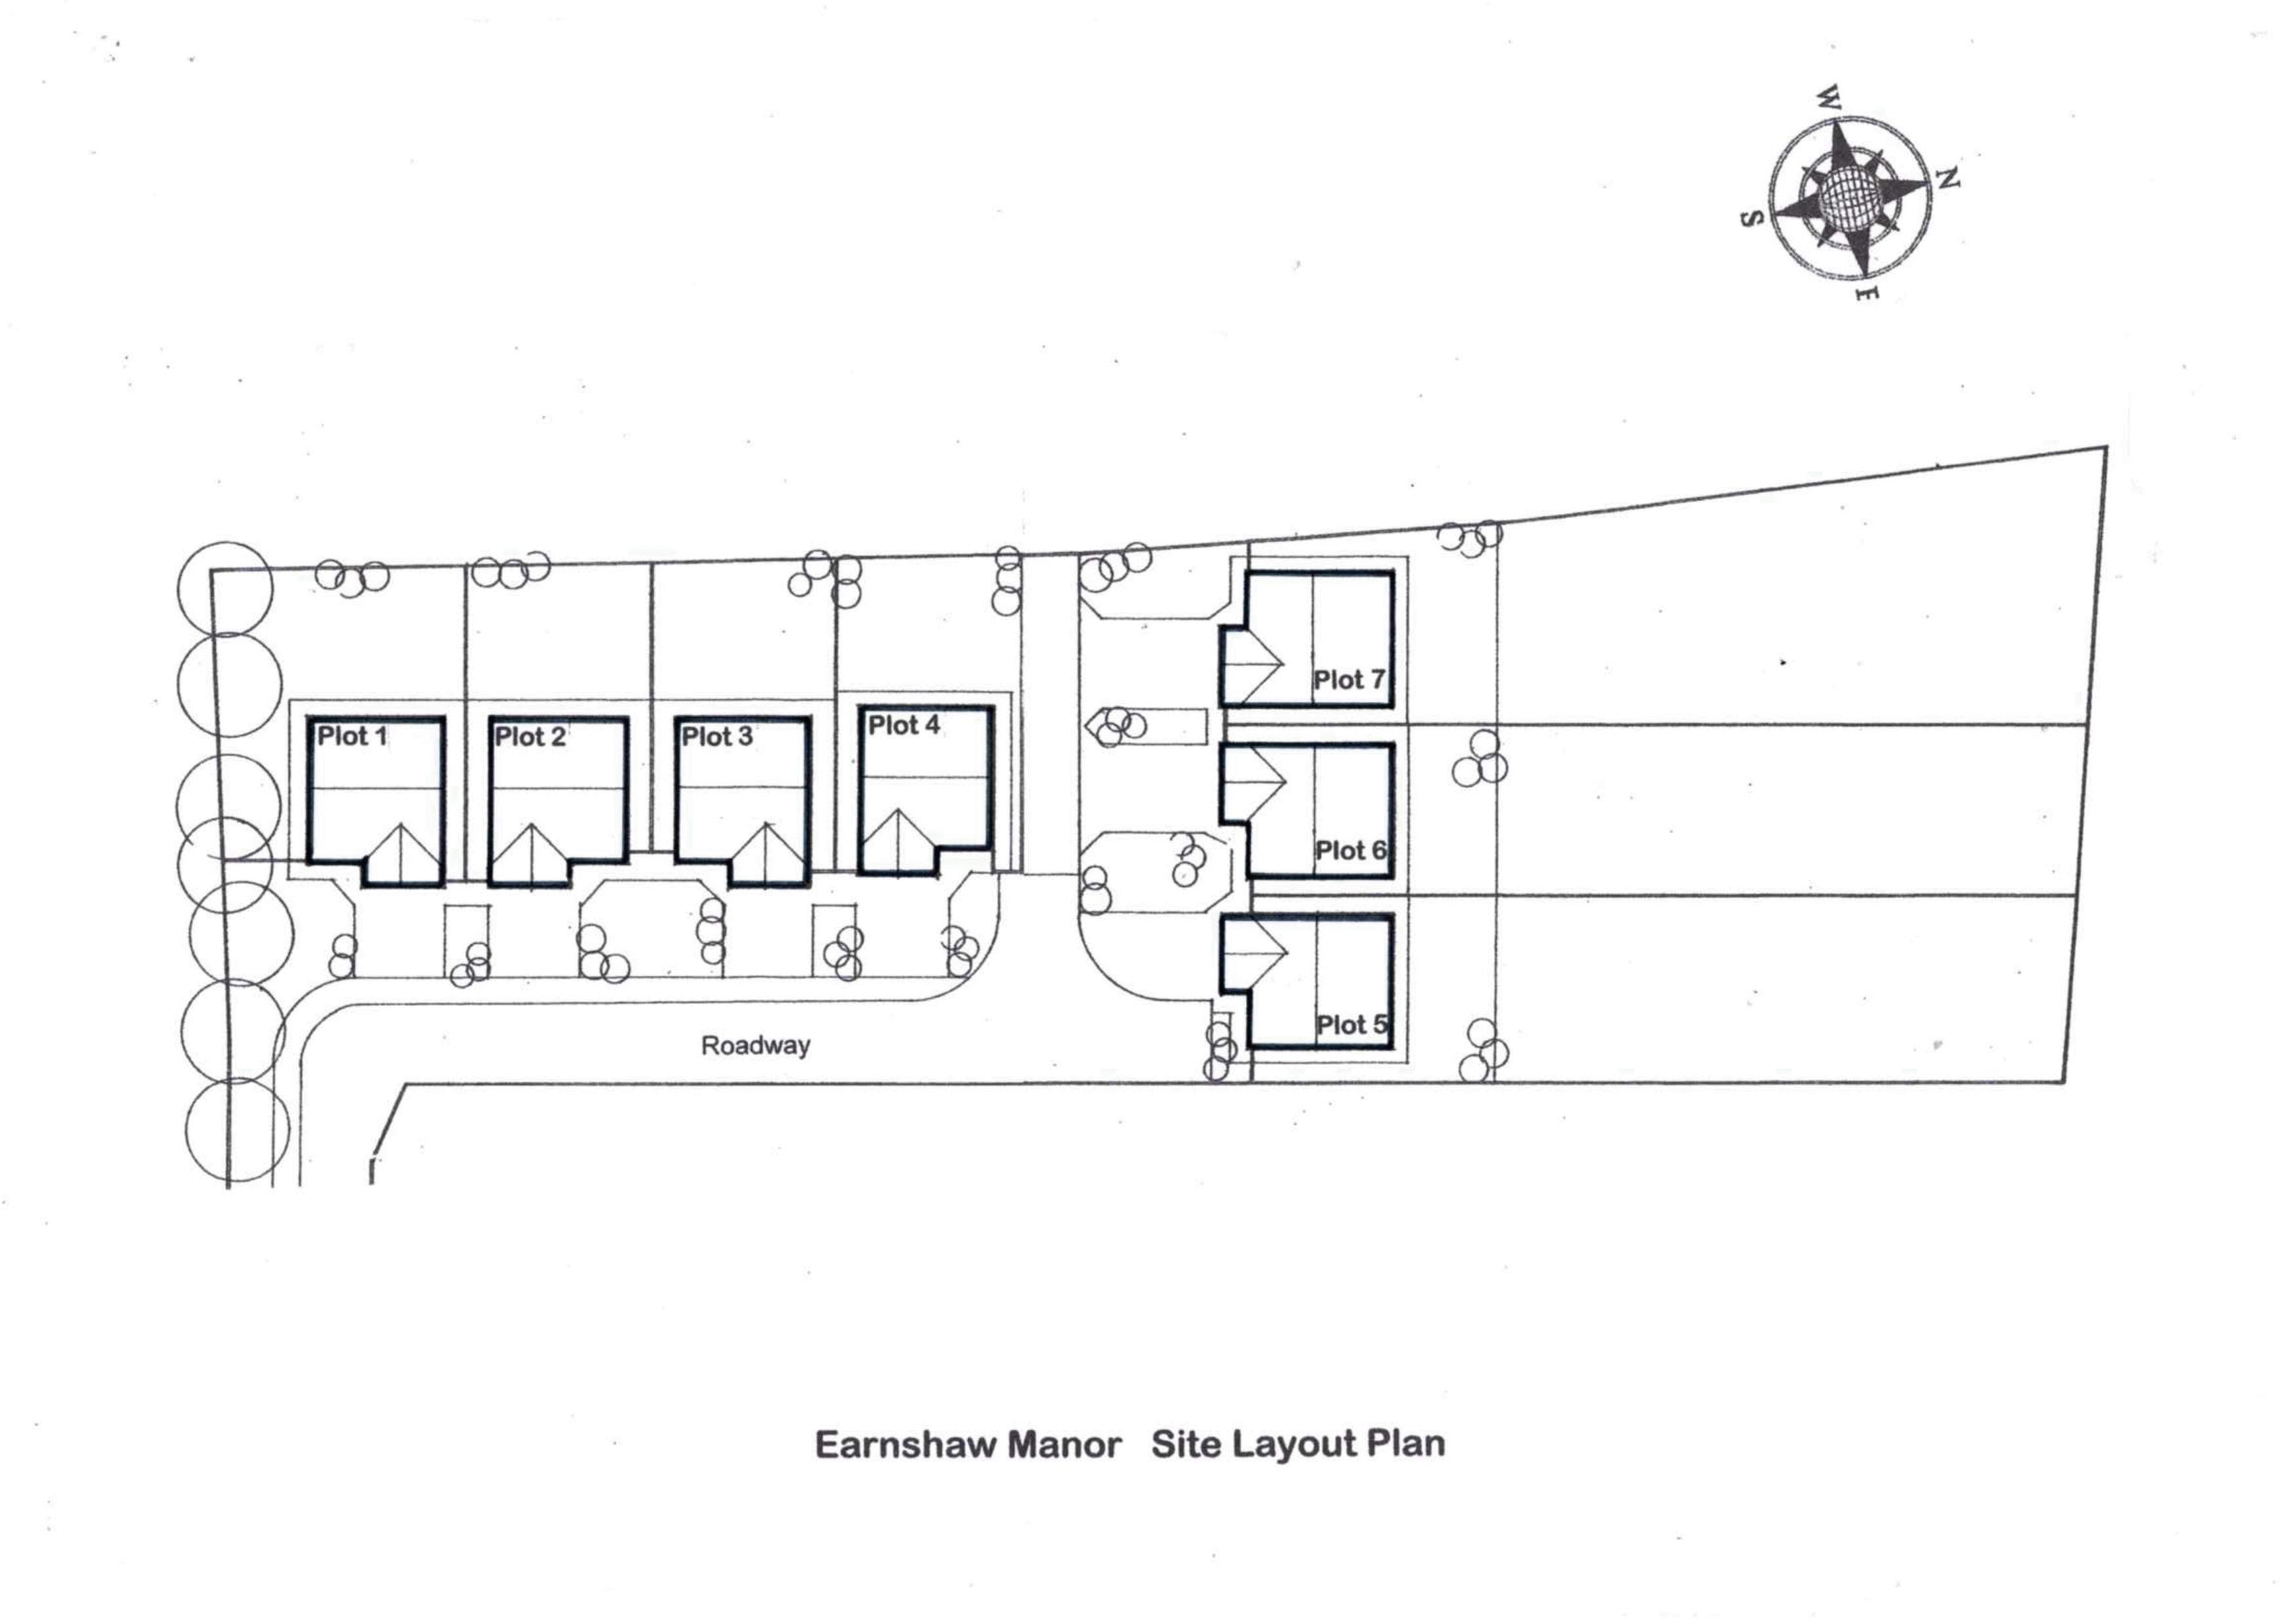 THE LAYOUT OF THE 7 NEW HOMES